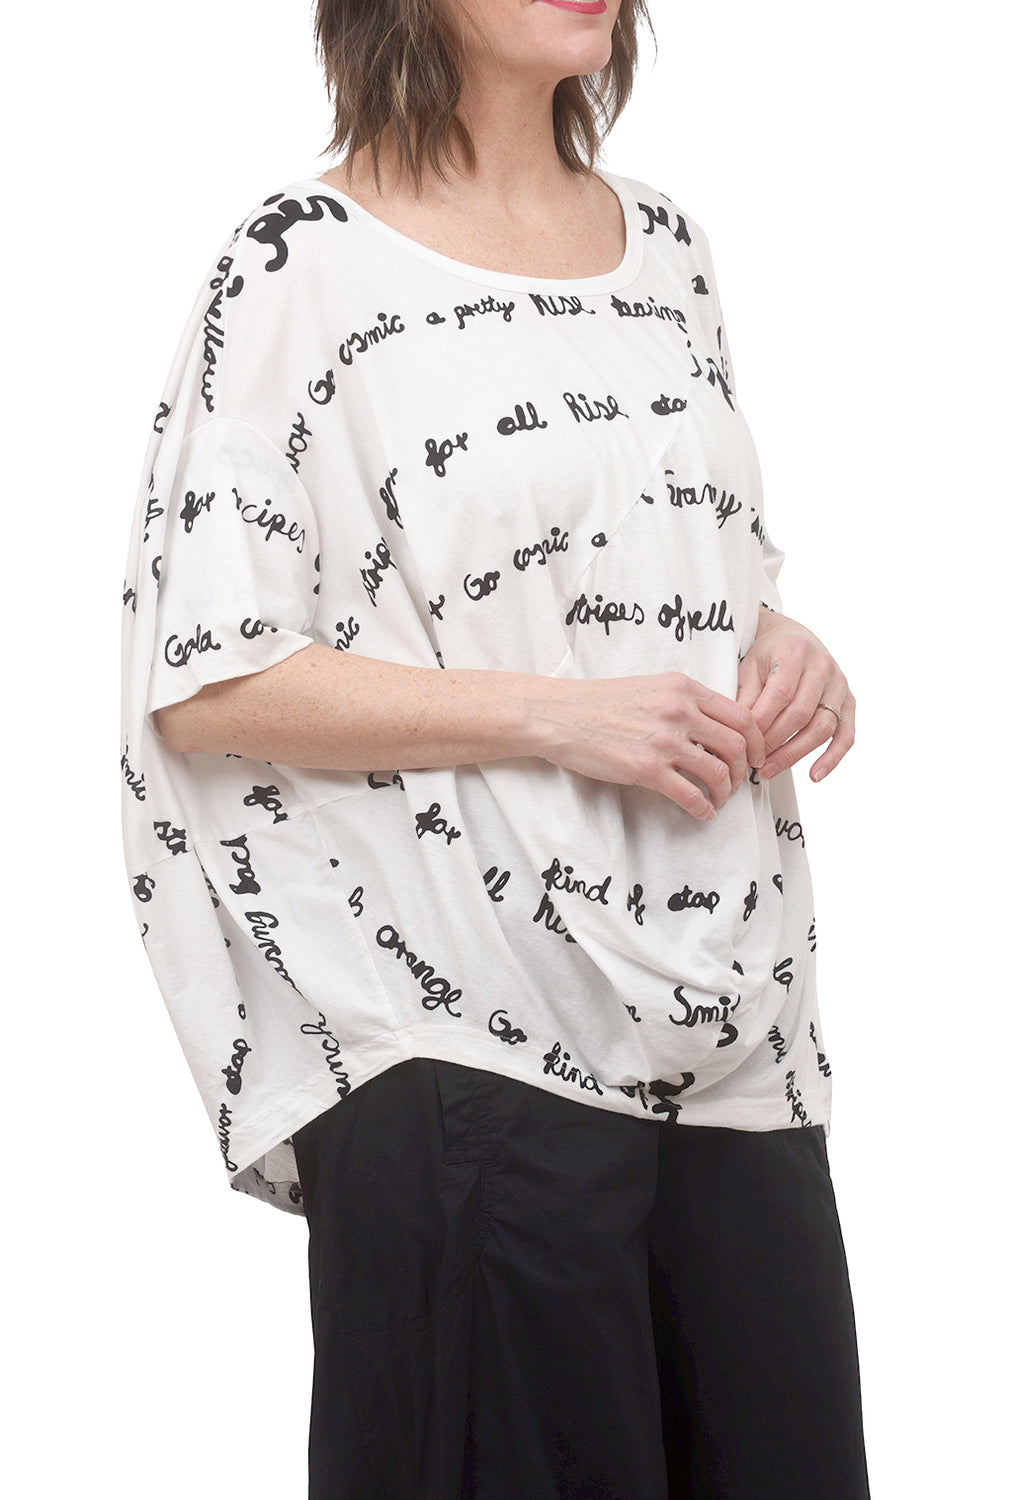 Rundholz Black Label Type Attack Drape Tee, Off-White/Black